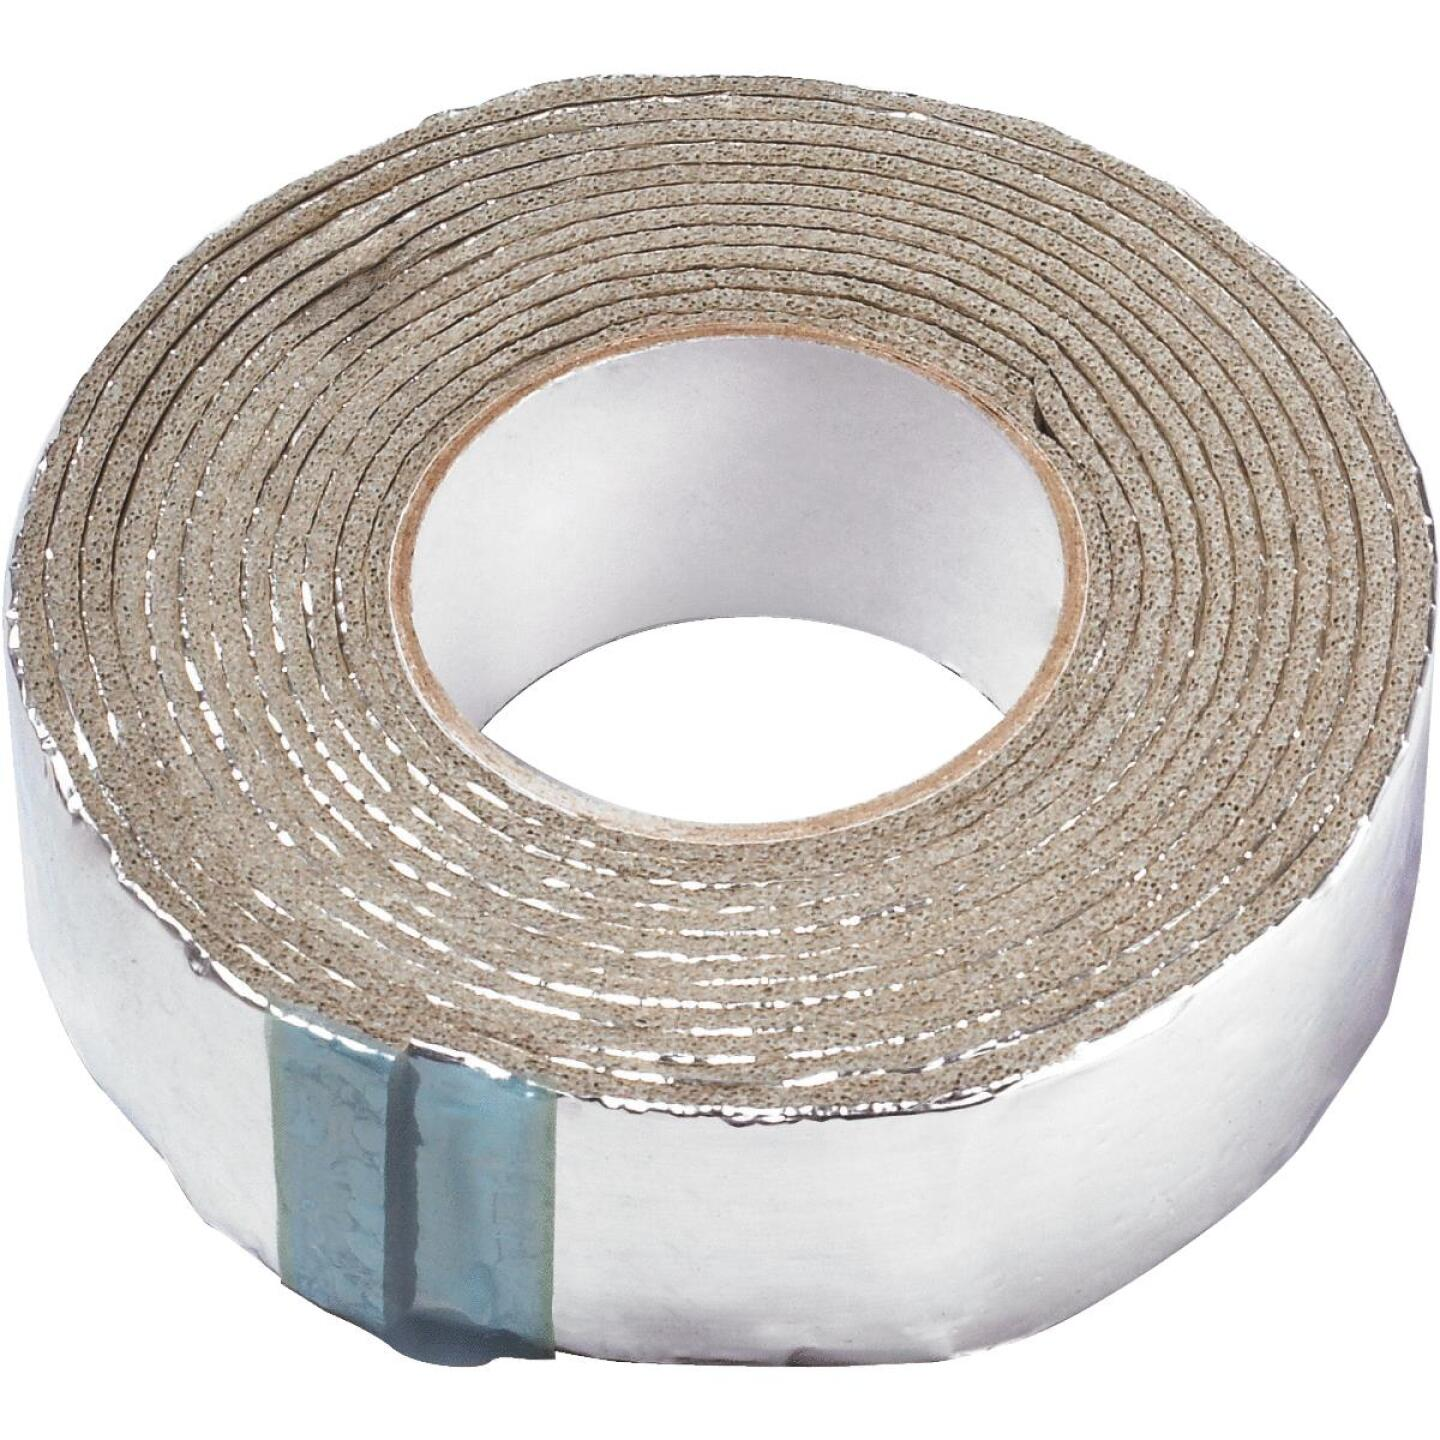 Frost King 1/8 In. x 2 x 15 Ft. In. Wall Self-Adhesive Foil and Foam Pipe Insulation Wrap Image 2